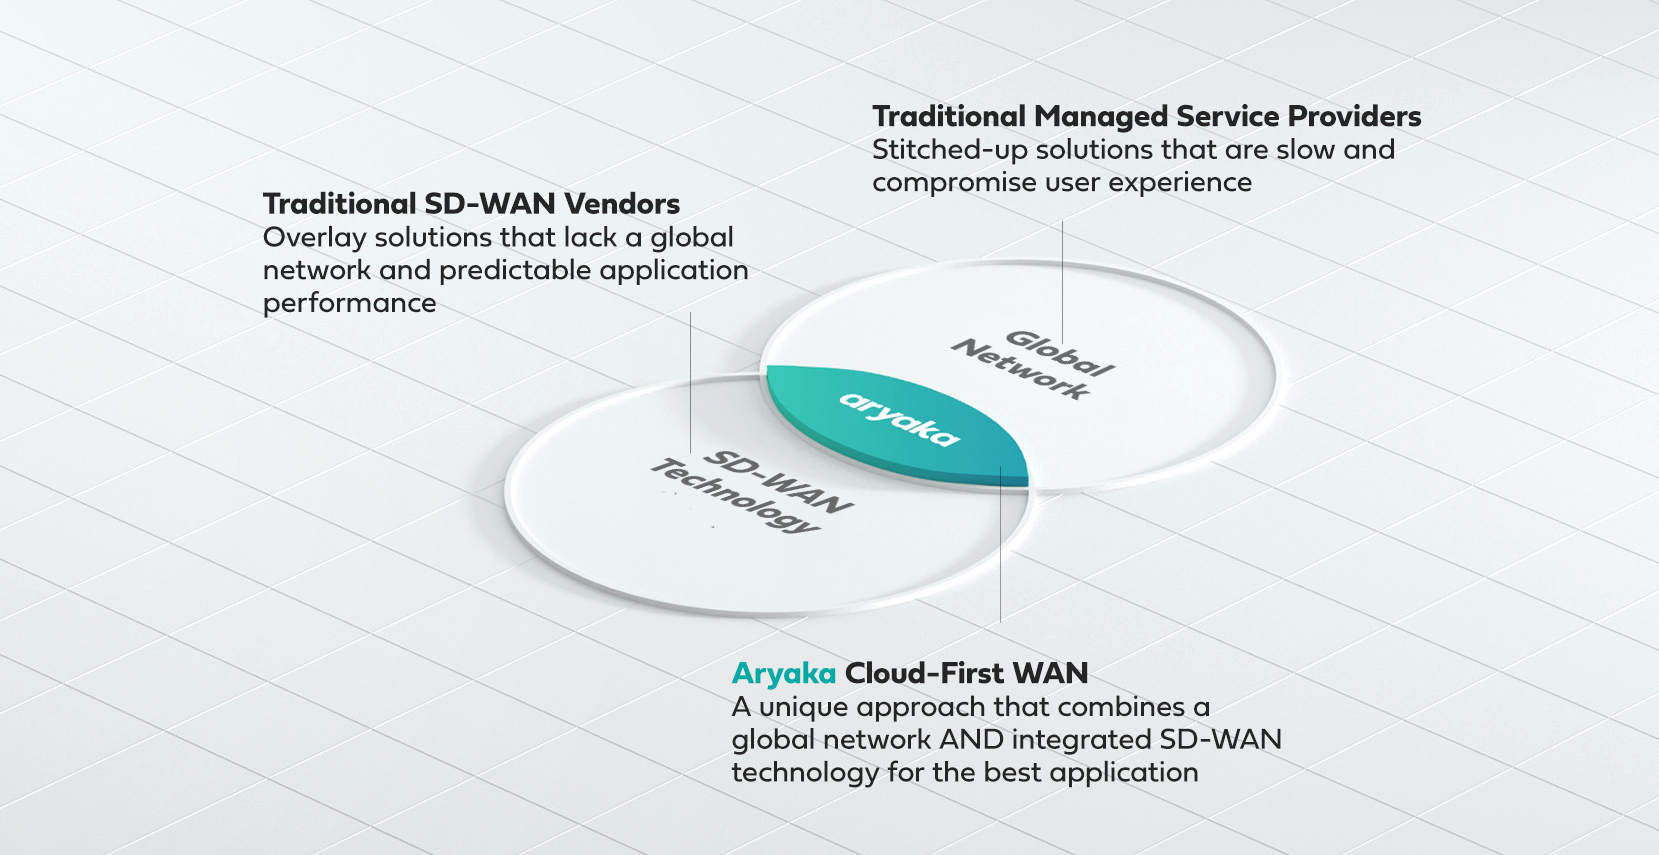 Cloud-First WAN